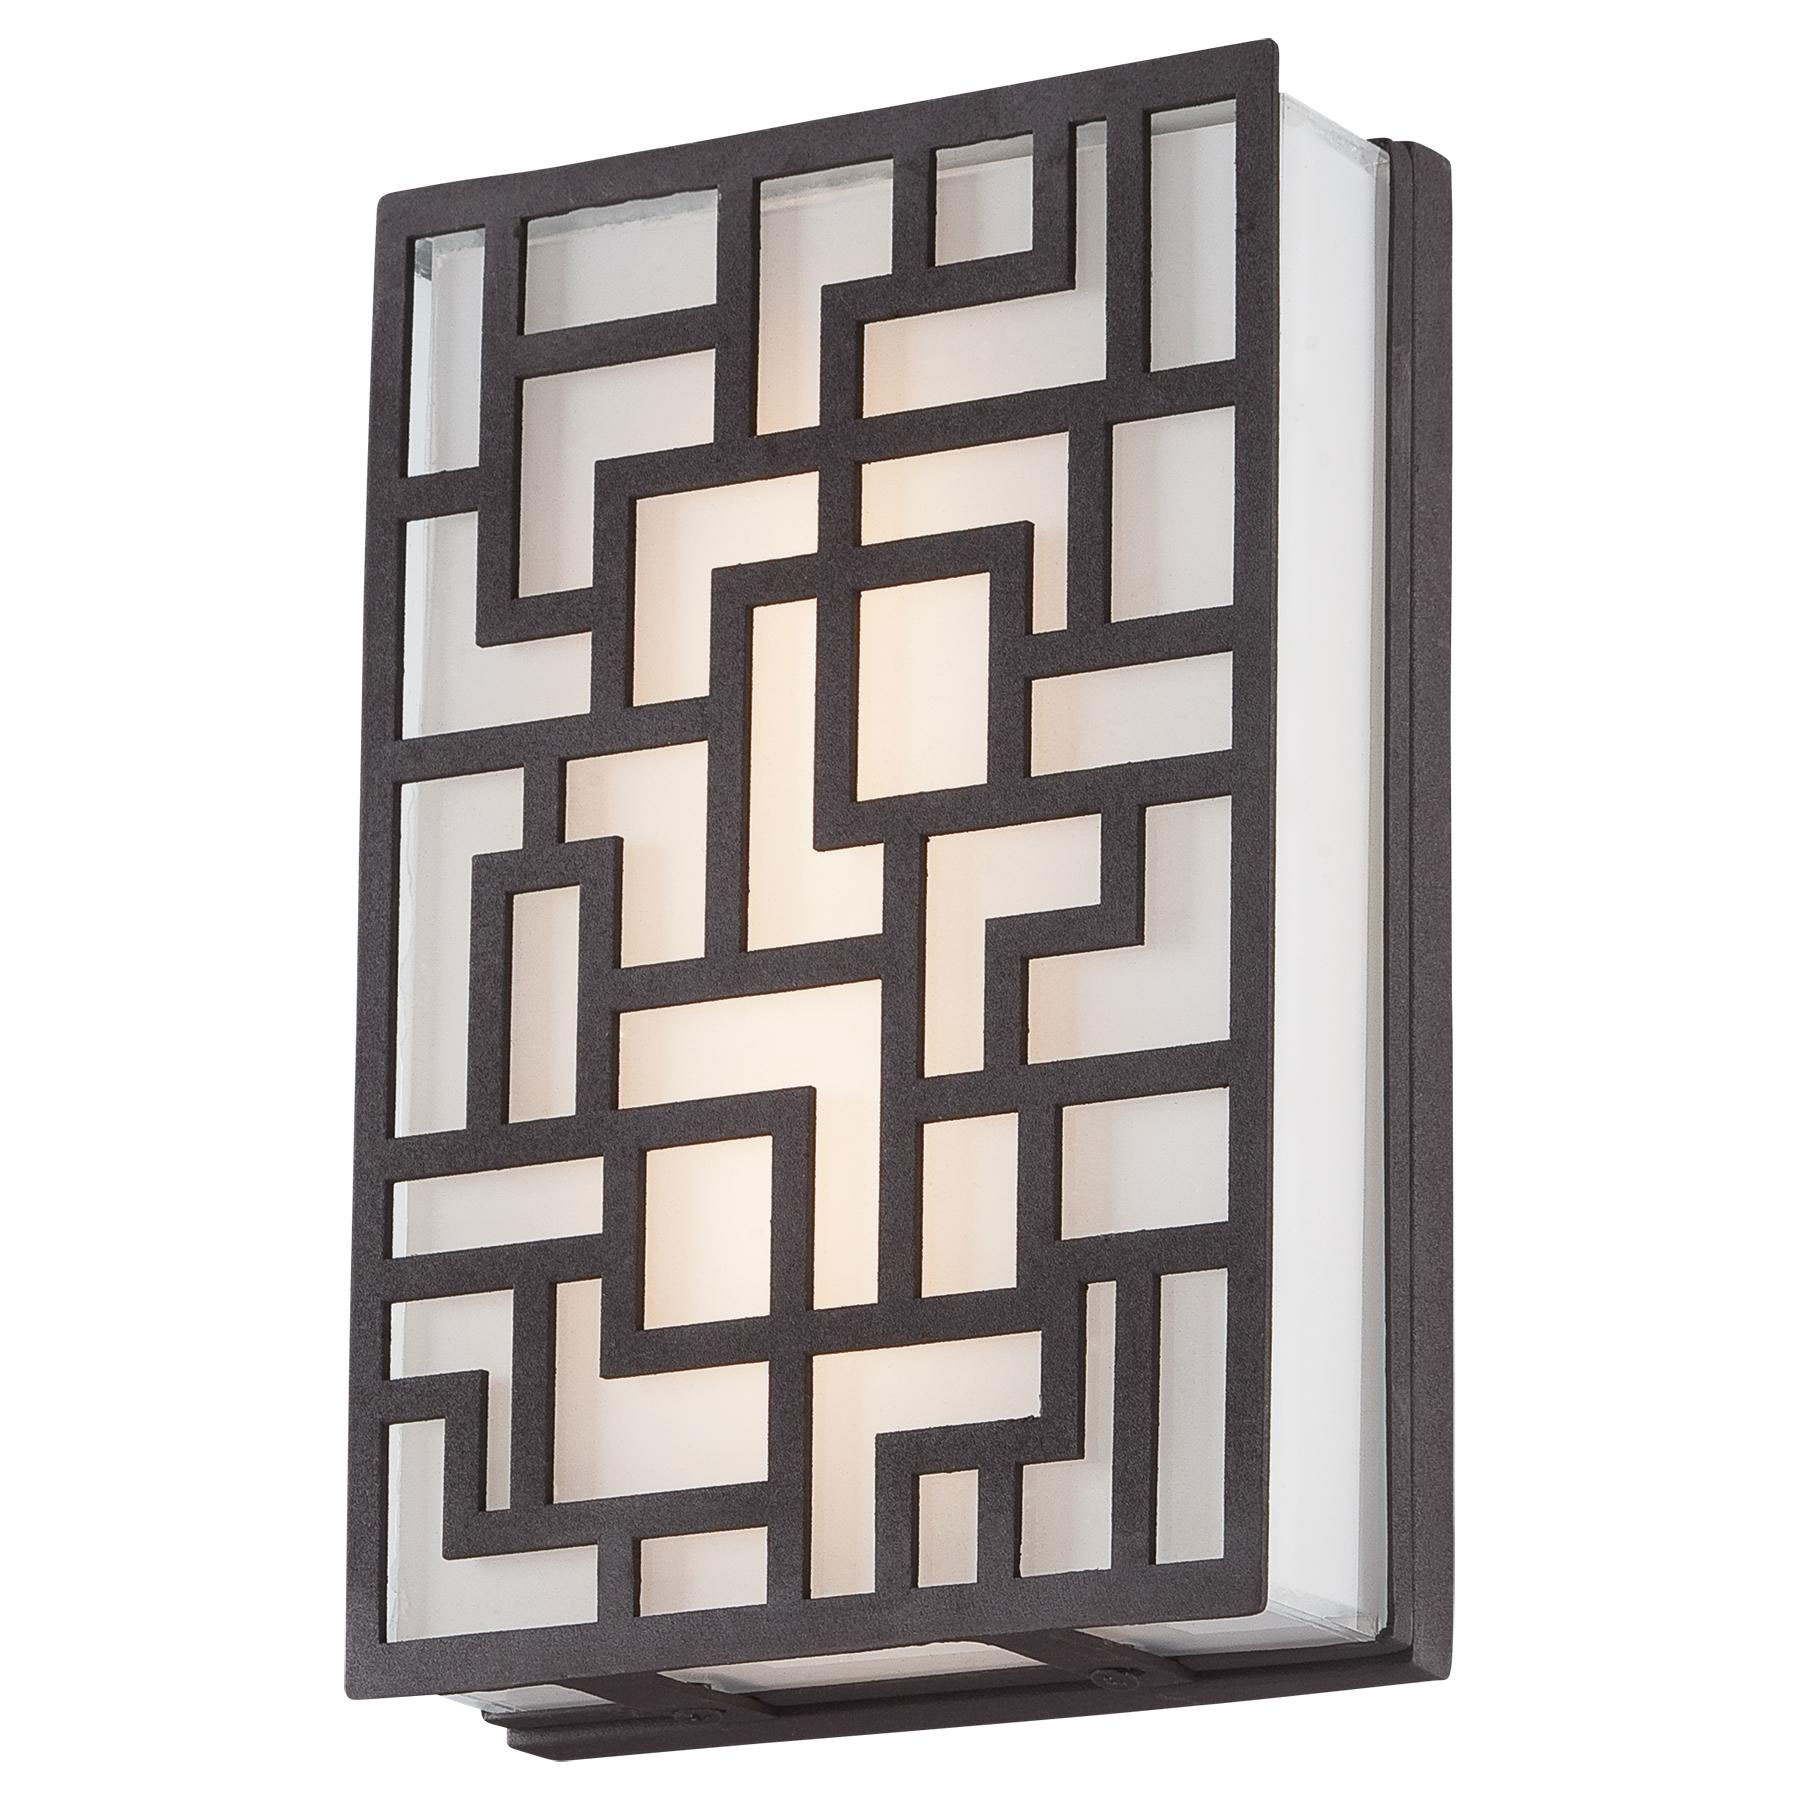 Necklace outdoor led wall sconce by george kovacs p1221 287 l alecias necklace outdoor led wall sconce by george kovacs p1221 287 l amipublicfo Choice Image